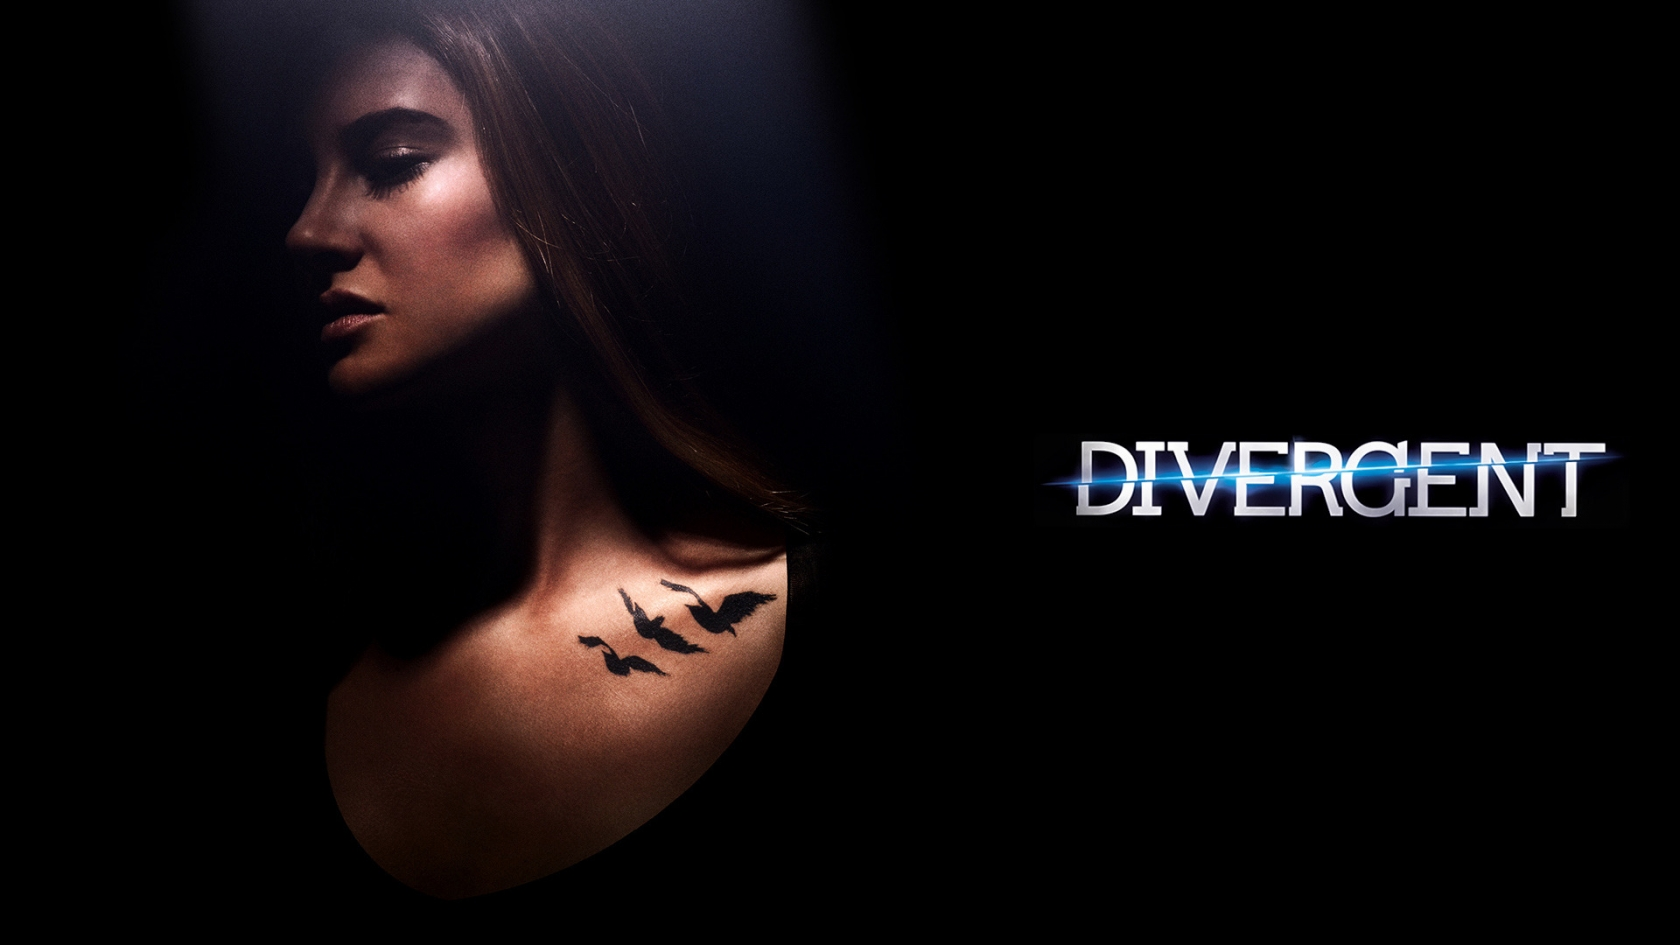 Divergent 2014 Film for 1680 x 945 HDTV resolution